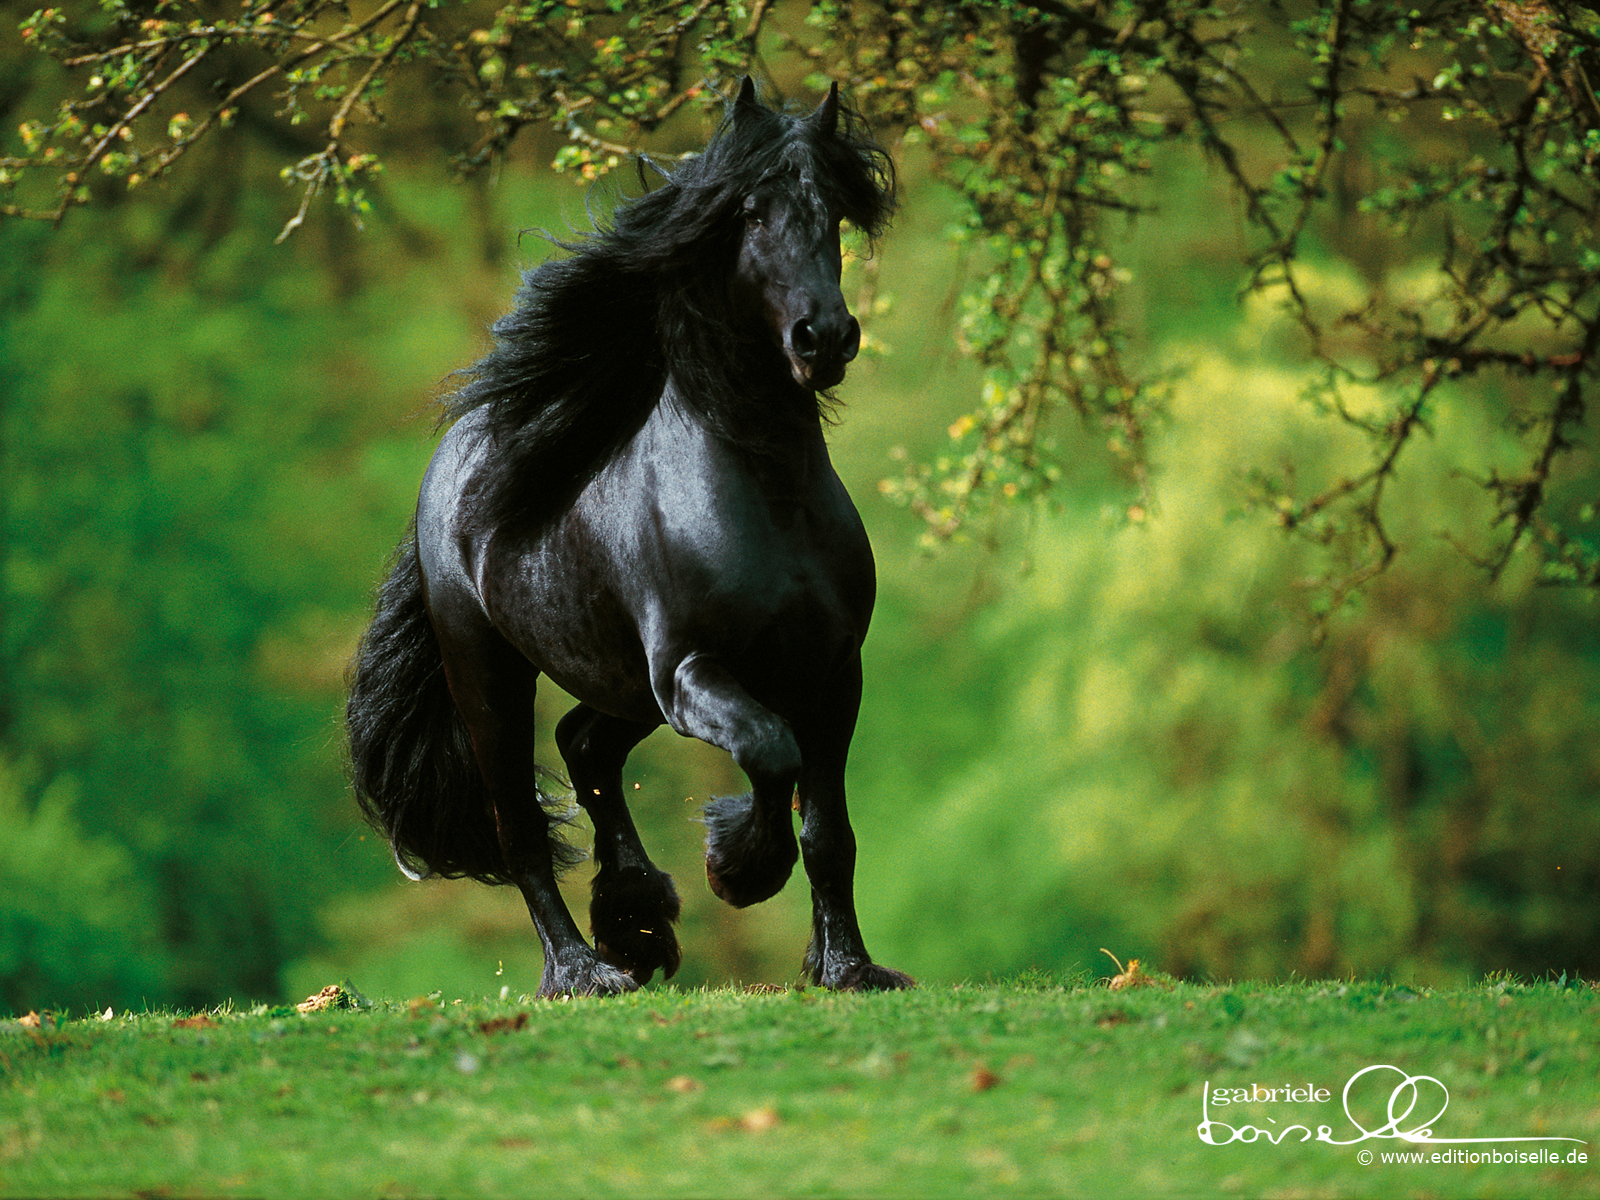 Best Wallpaper Horse Landscape - the-best-top-desktop-horse-wallpapers-13  Pictures_494645.jpg